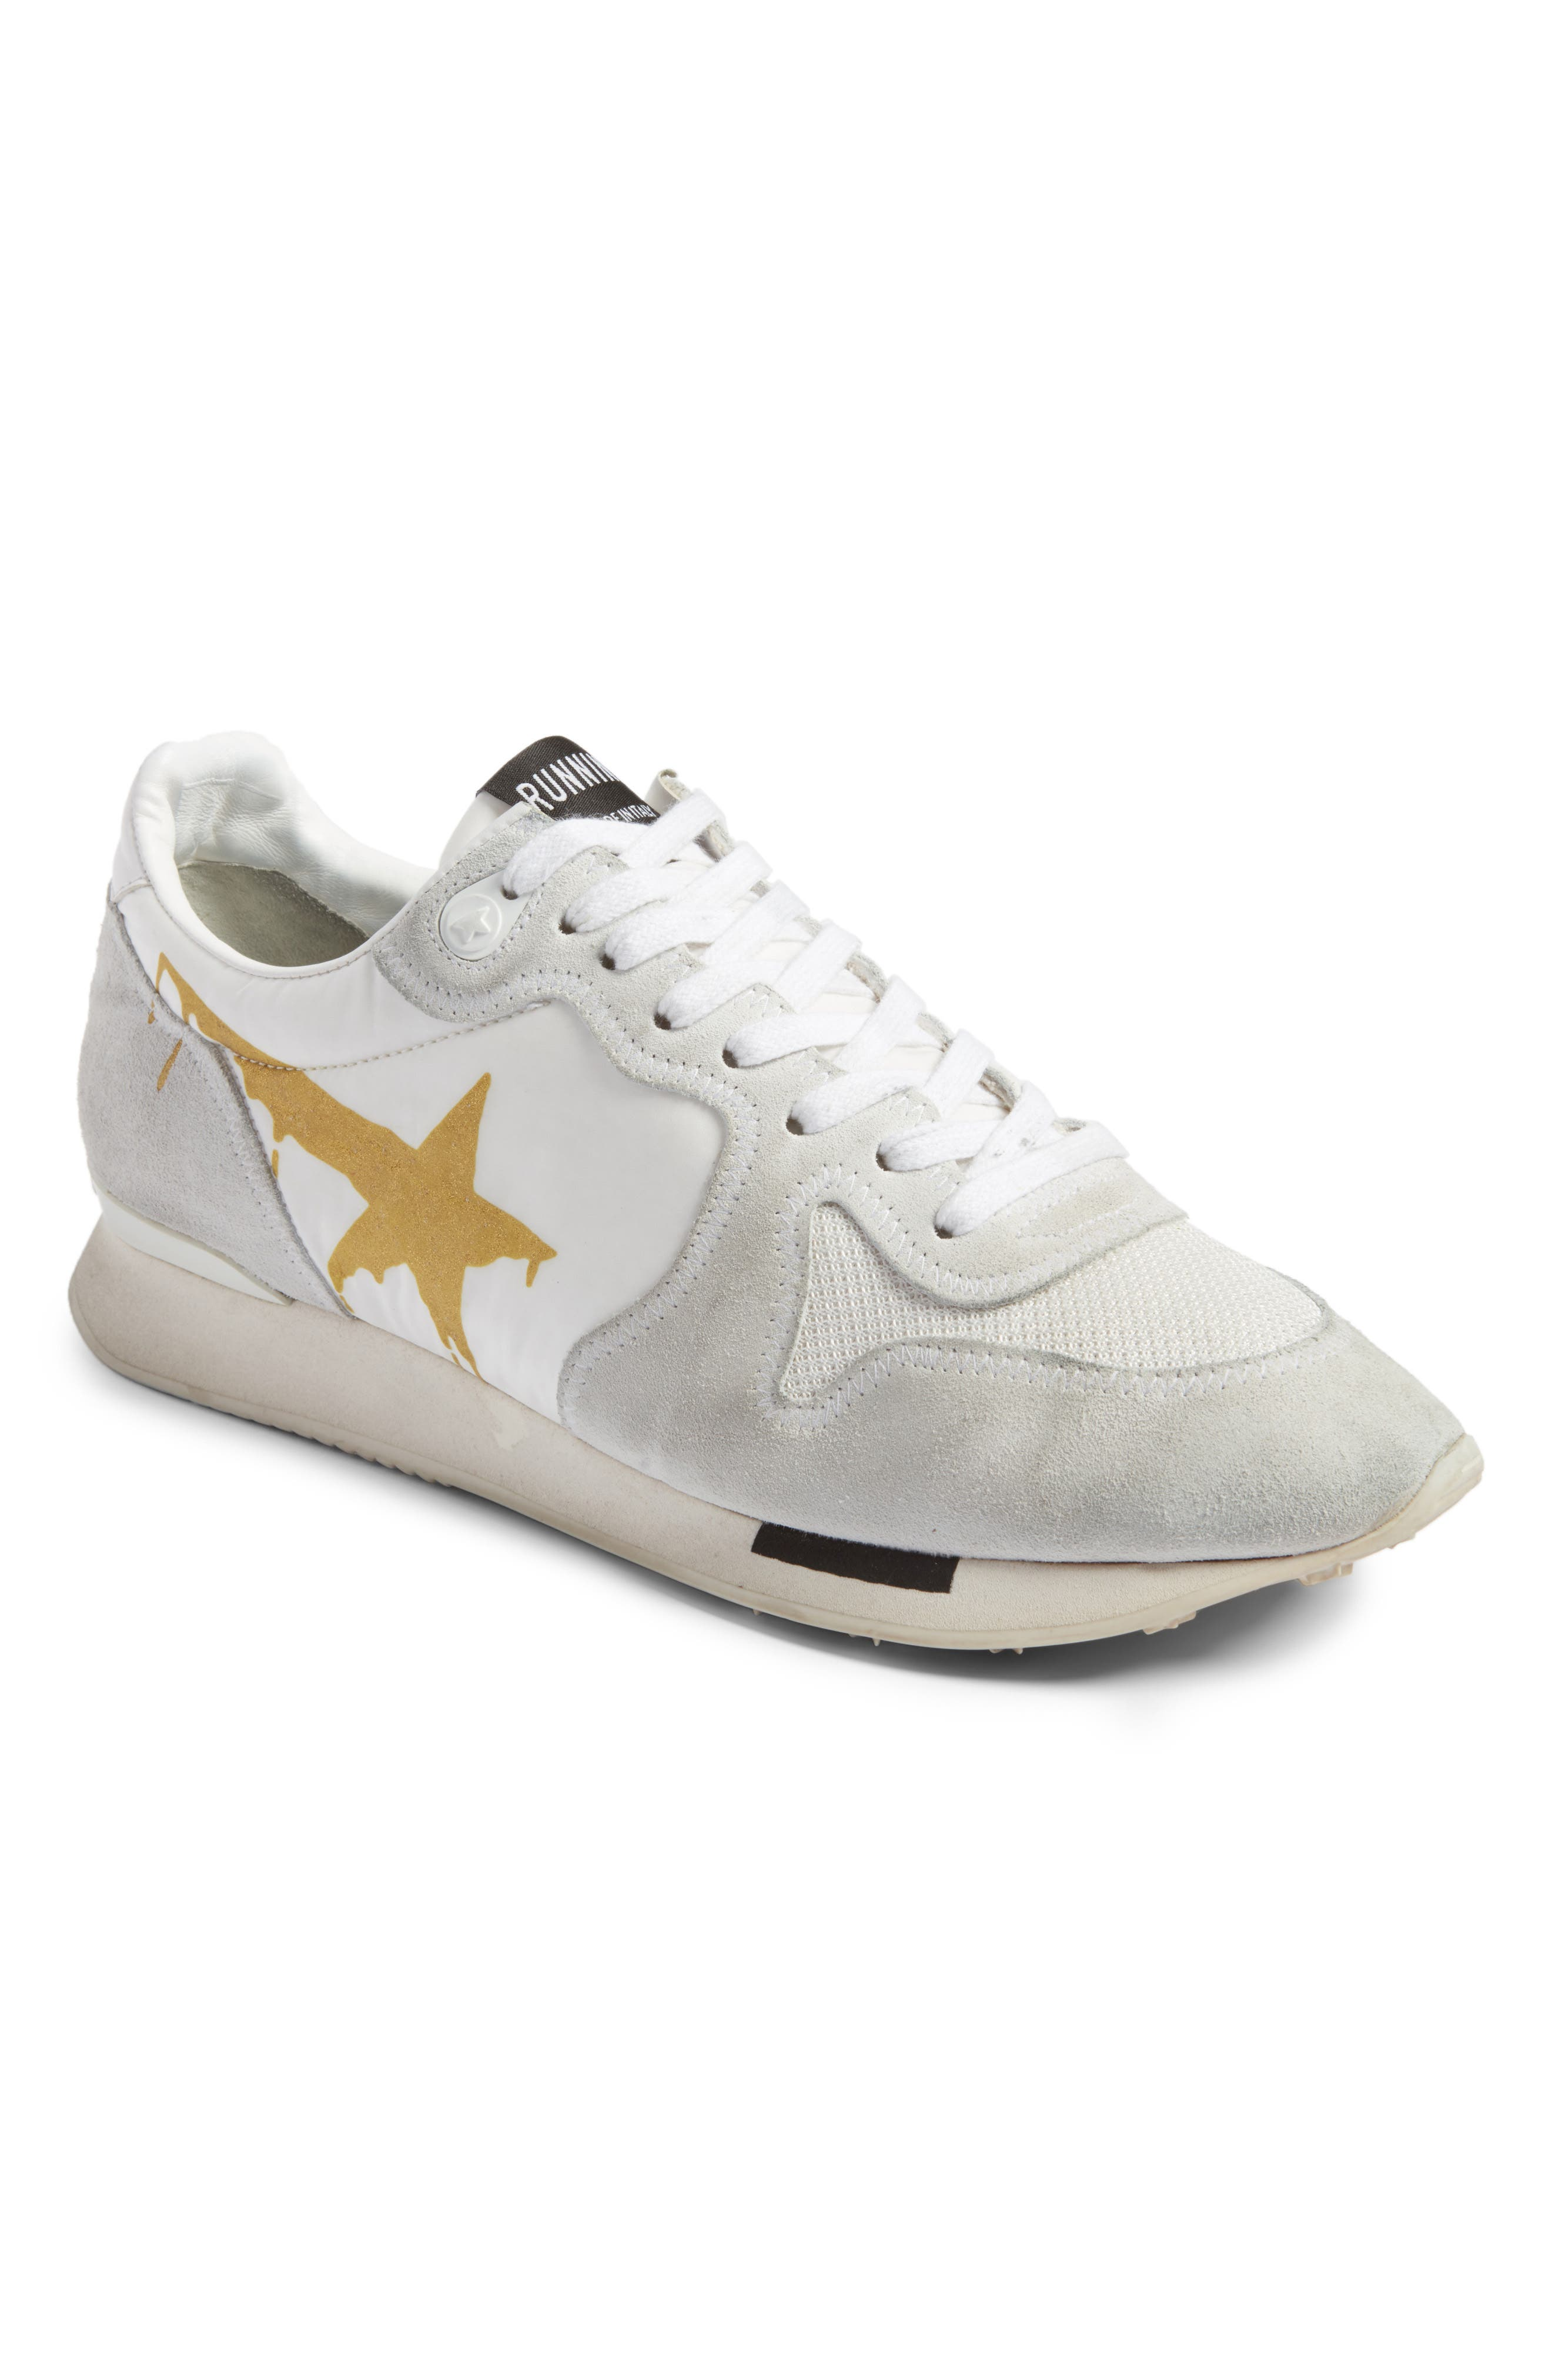 Golden Goose Running Trainer Sneaker (Women)